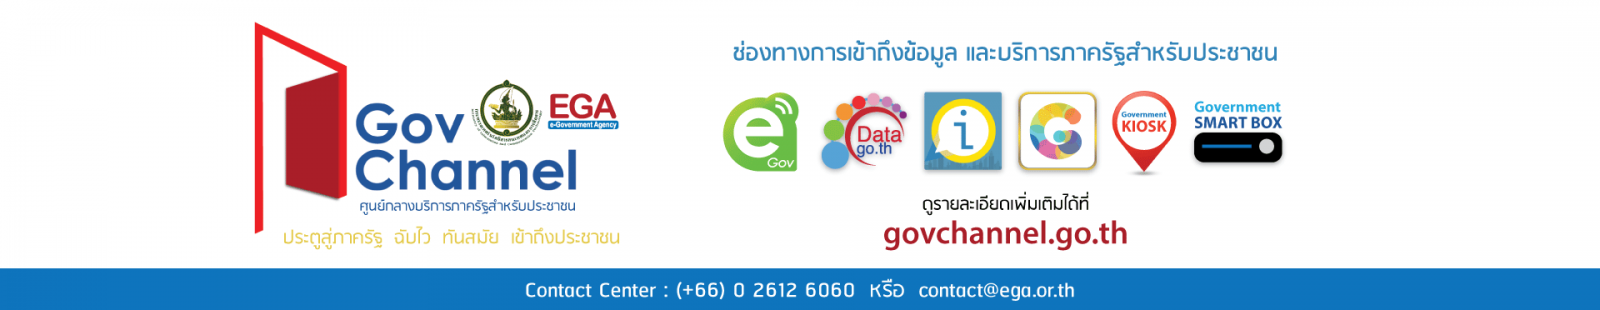 GovChannel Banner Full Page 1920 372